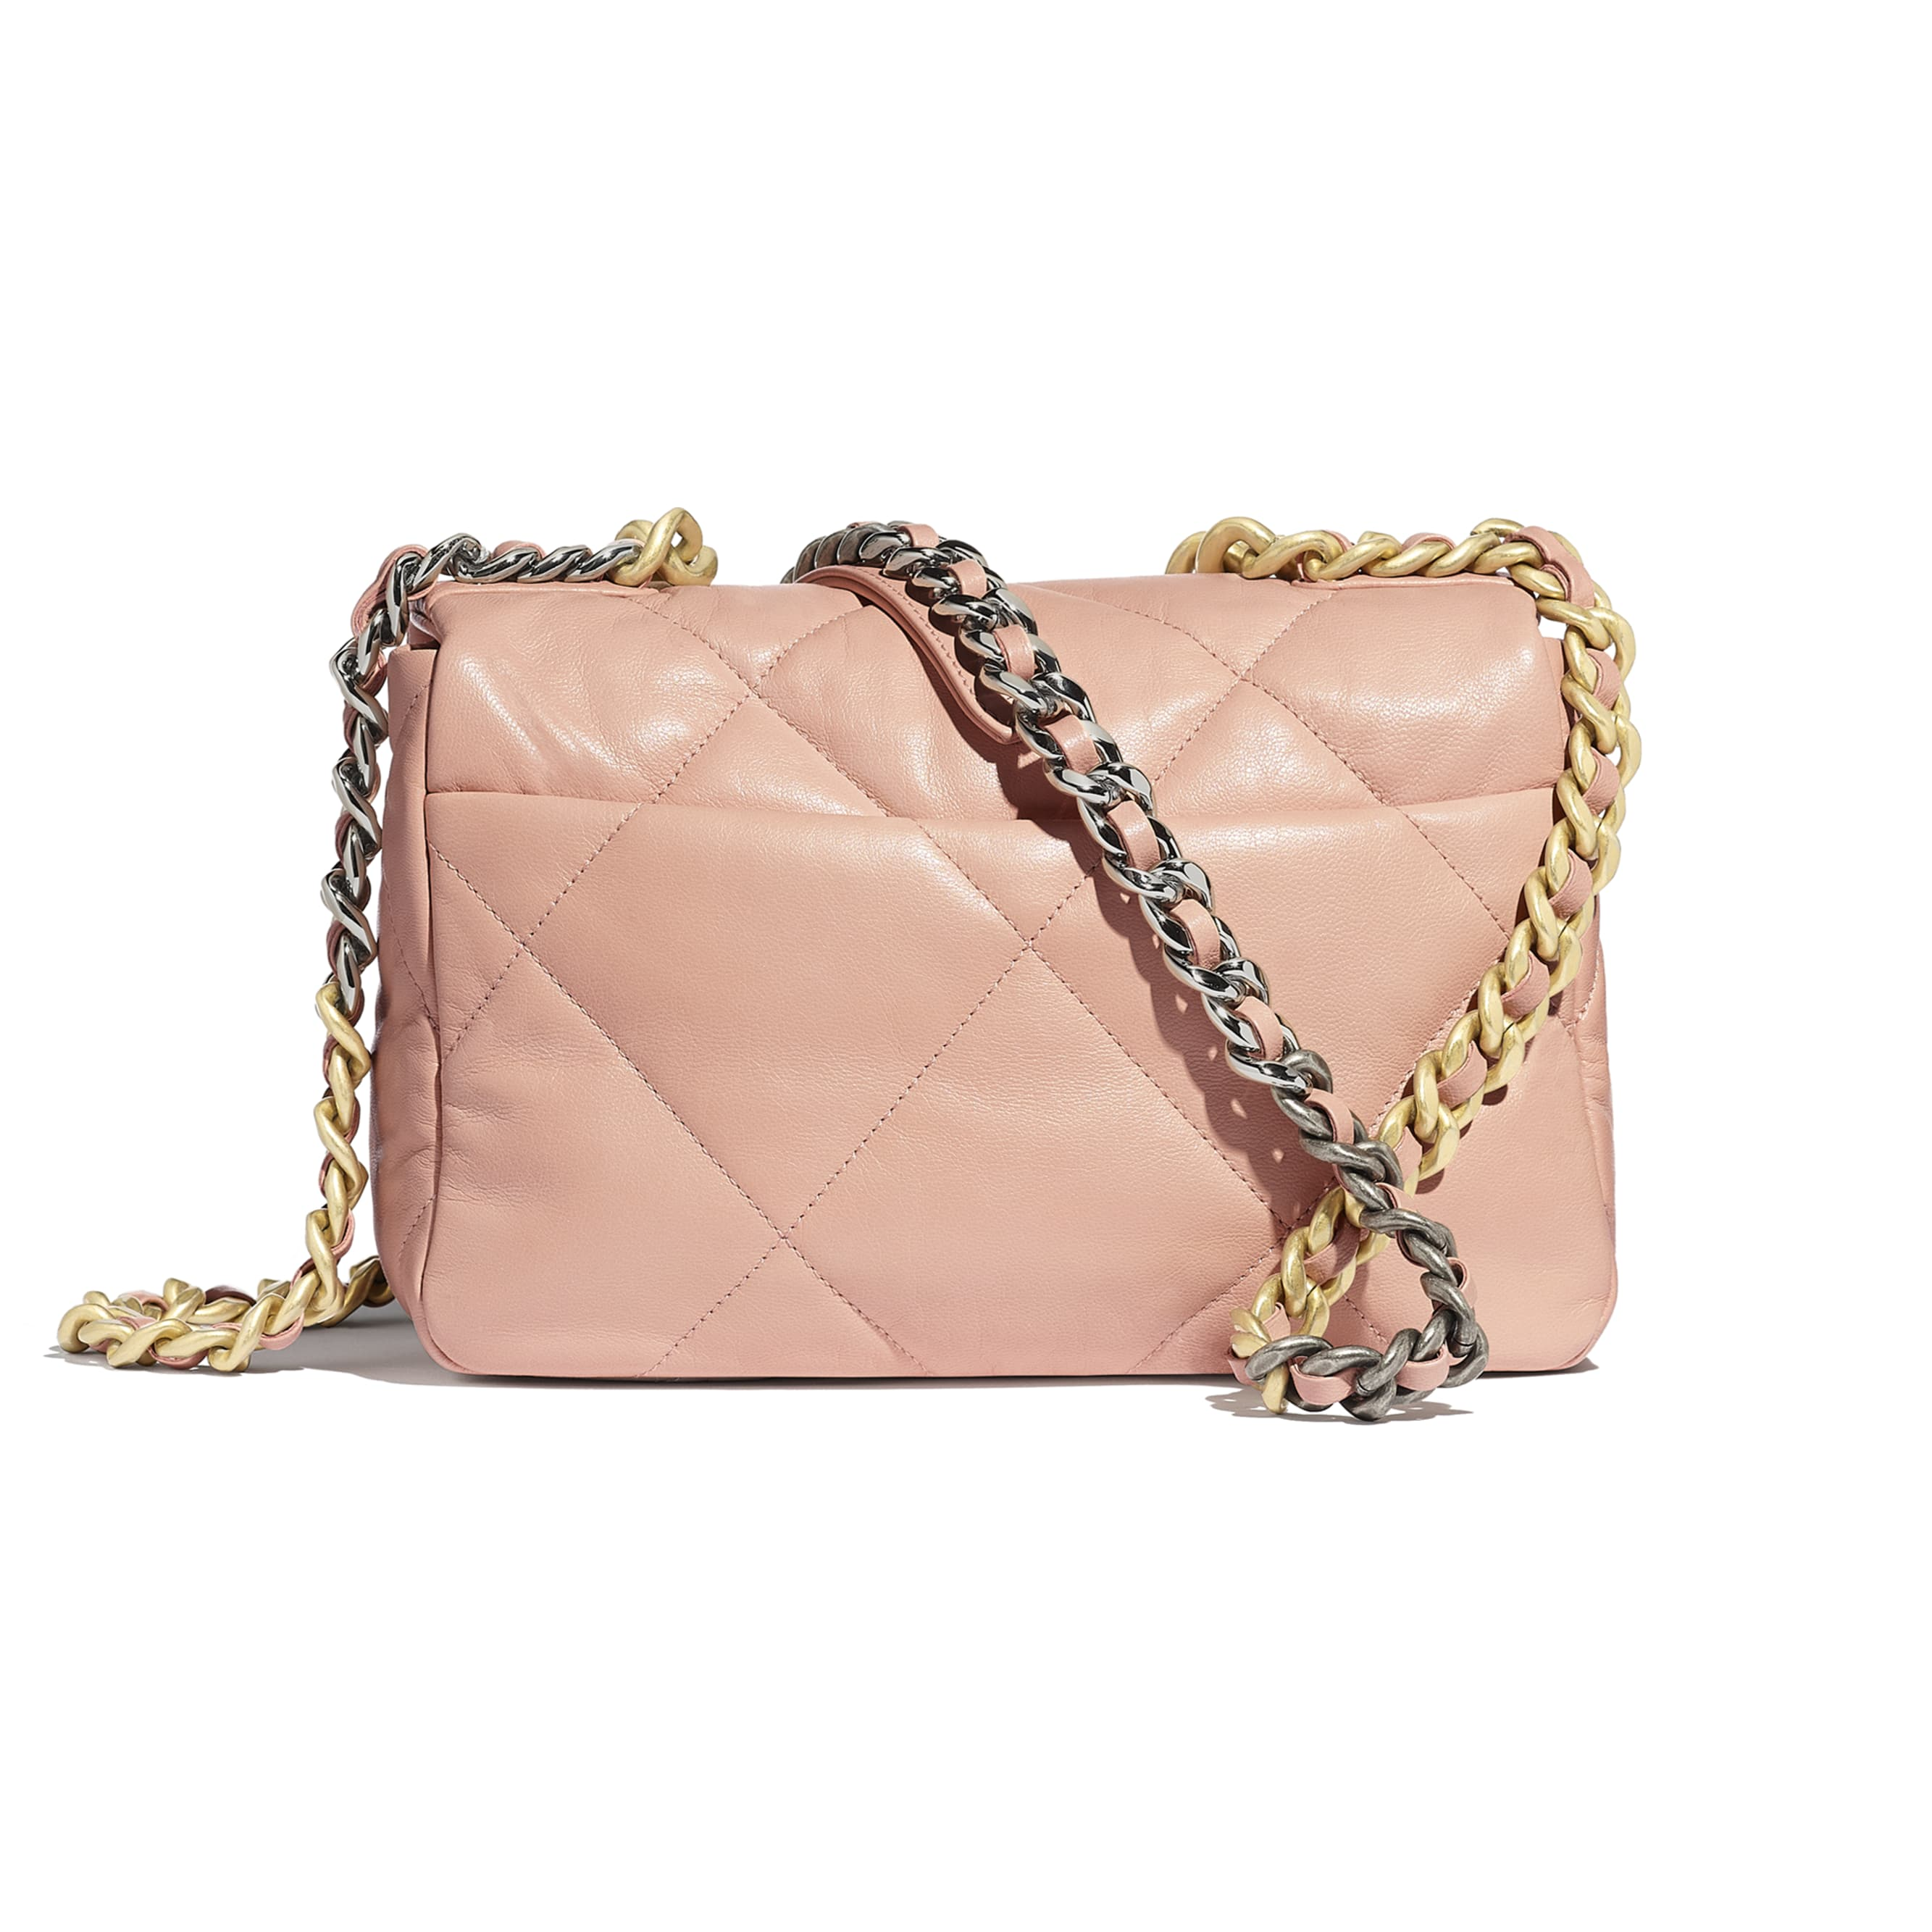 CHANEL 19 Flap Bag - Light Pink - Goatskin, Gold-Tone, Silver-Tone & Ruthenium-Finish Metal - Alternative view - see standard sized version